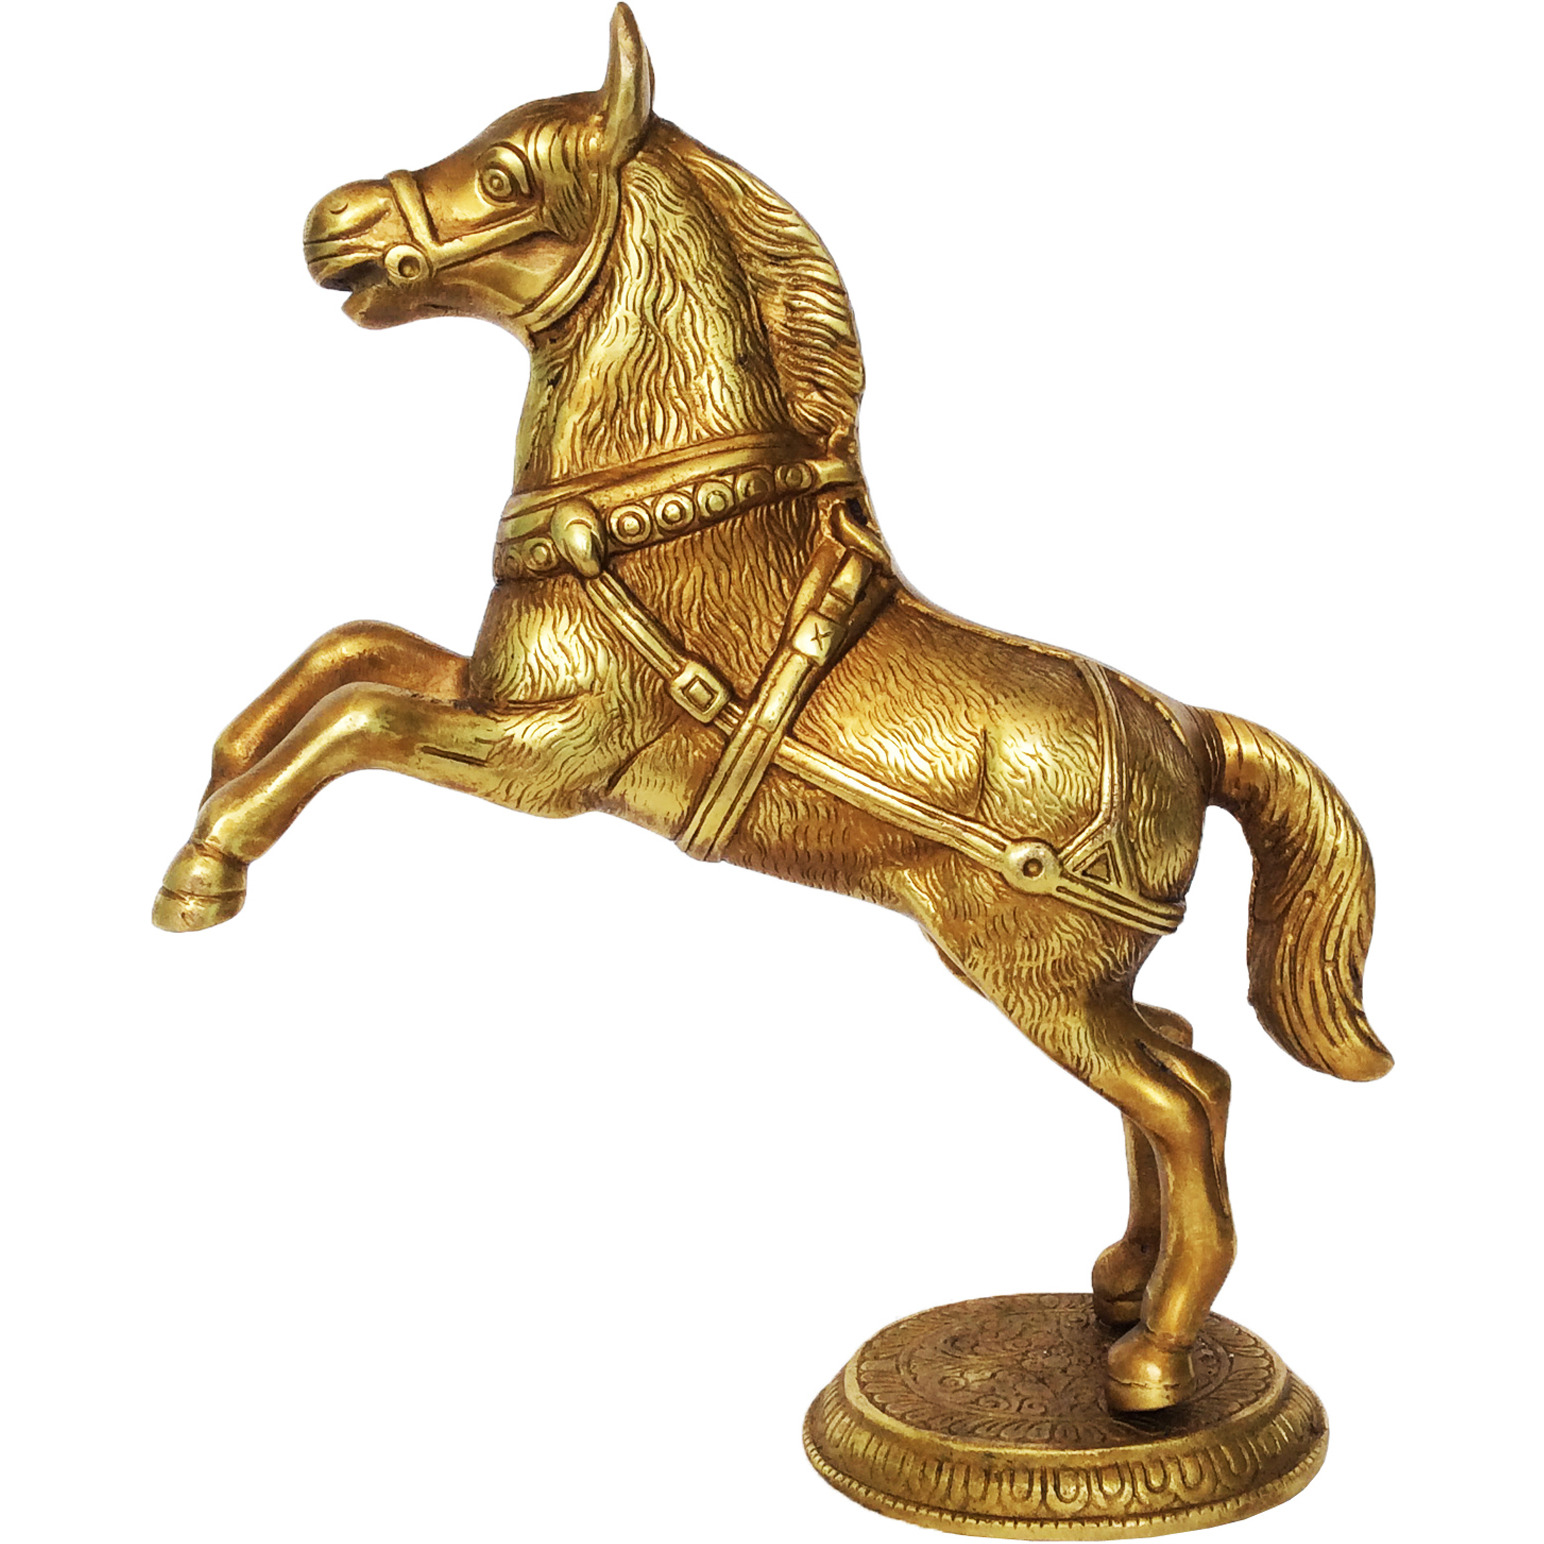 Aakrati Horse Statue Made in Brass Metal with Yellow Finish a Table showpiece - Decorative Animal Figure | Home Decor | Office Decor | Gift |